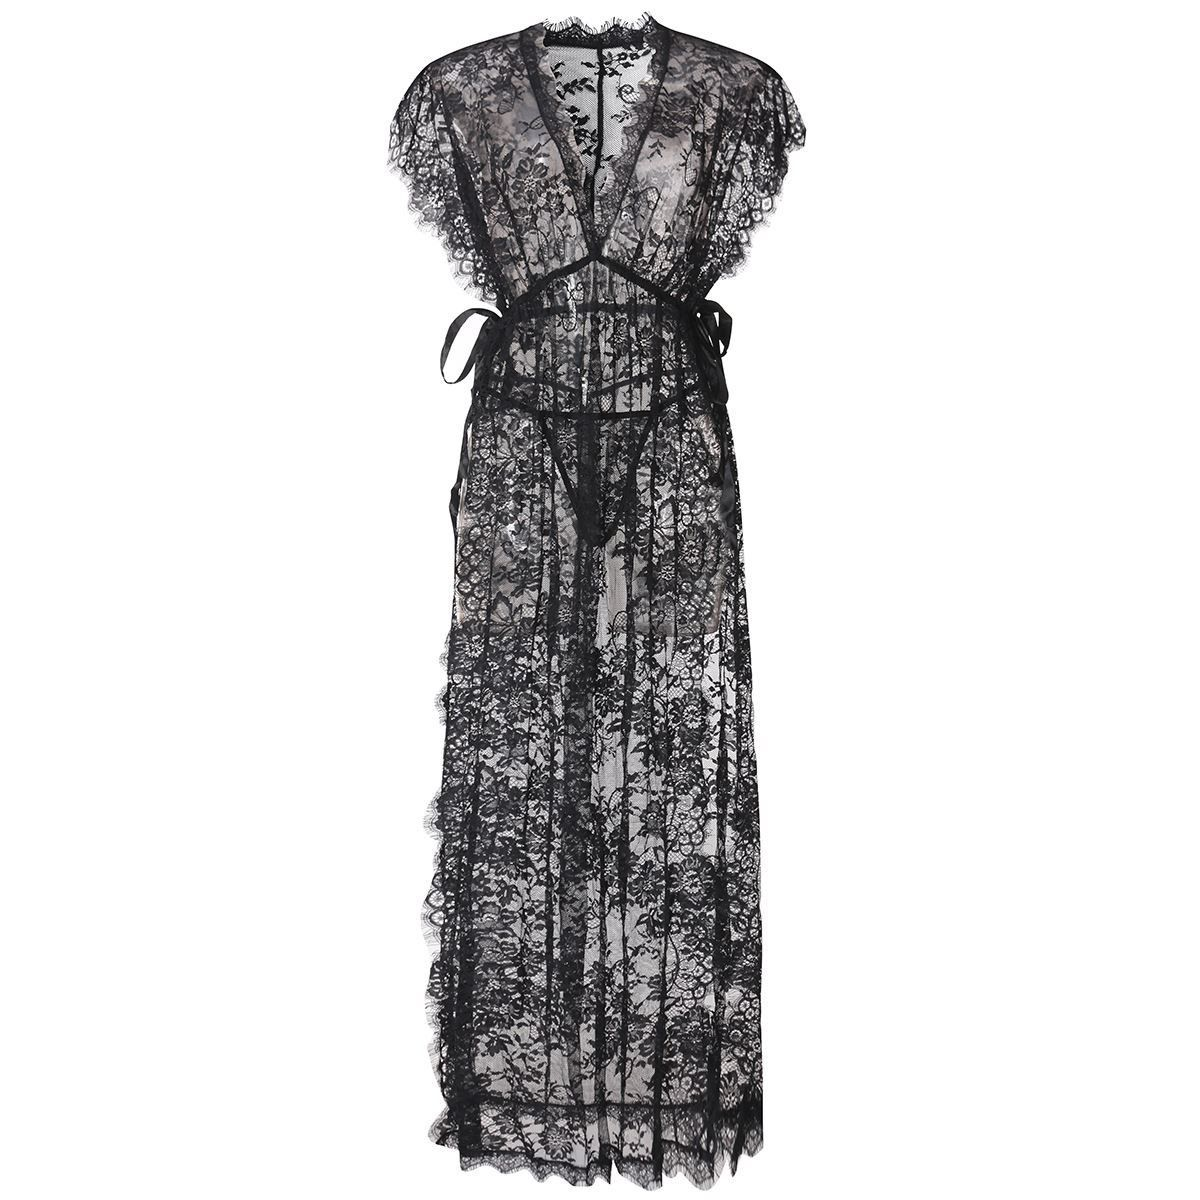 44a6feaa2cd6 2016 Black Lace Women Sleepwear Dress Hot Underwear Transparent Sexy  Nightclub Party Maxi Long Dress Robe High Side Slit Vestido